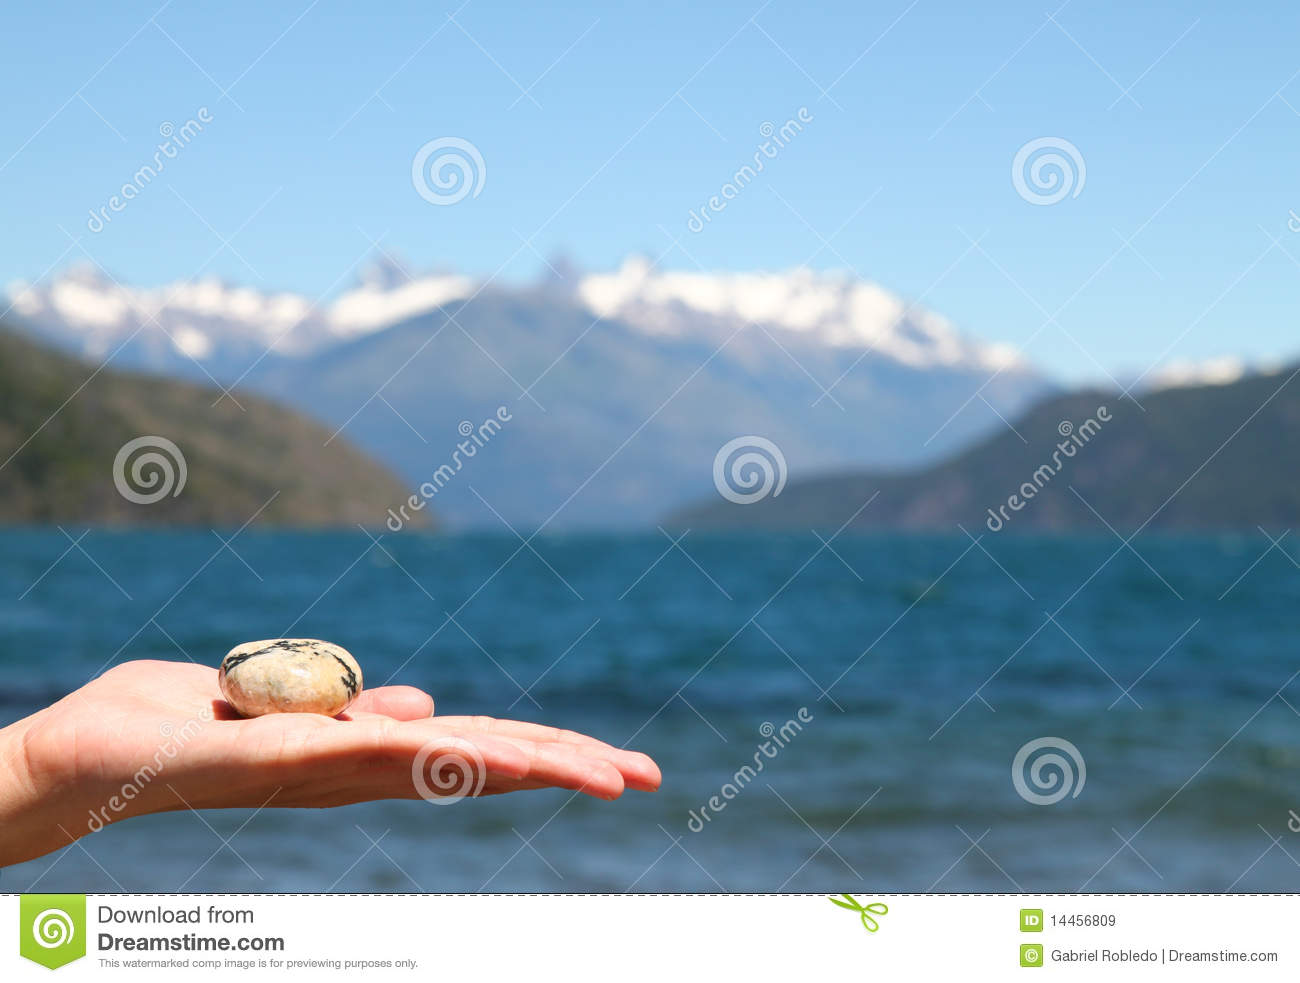 Pebble in the hand